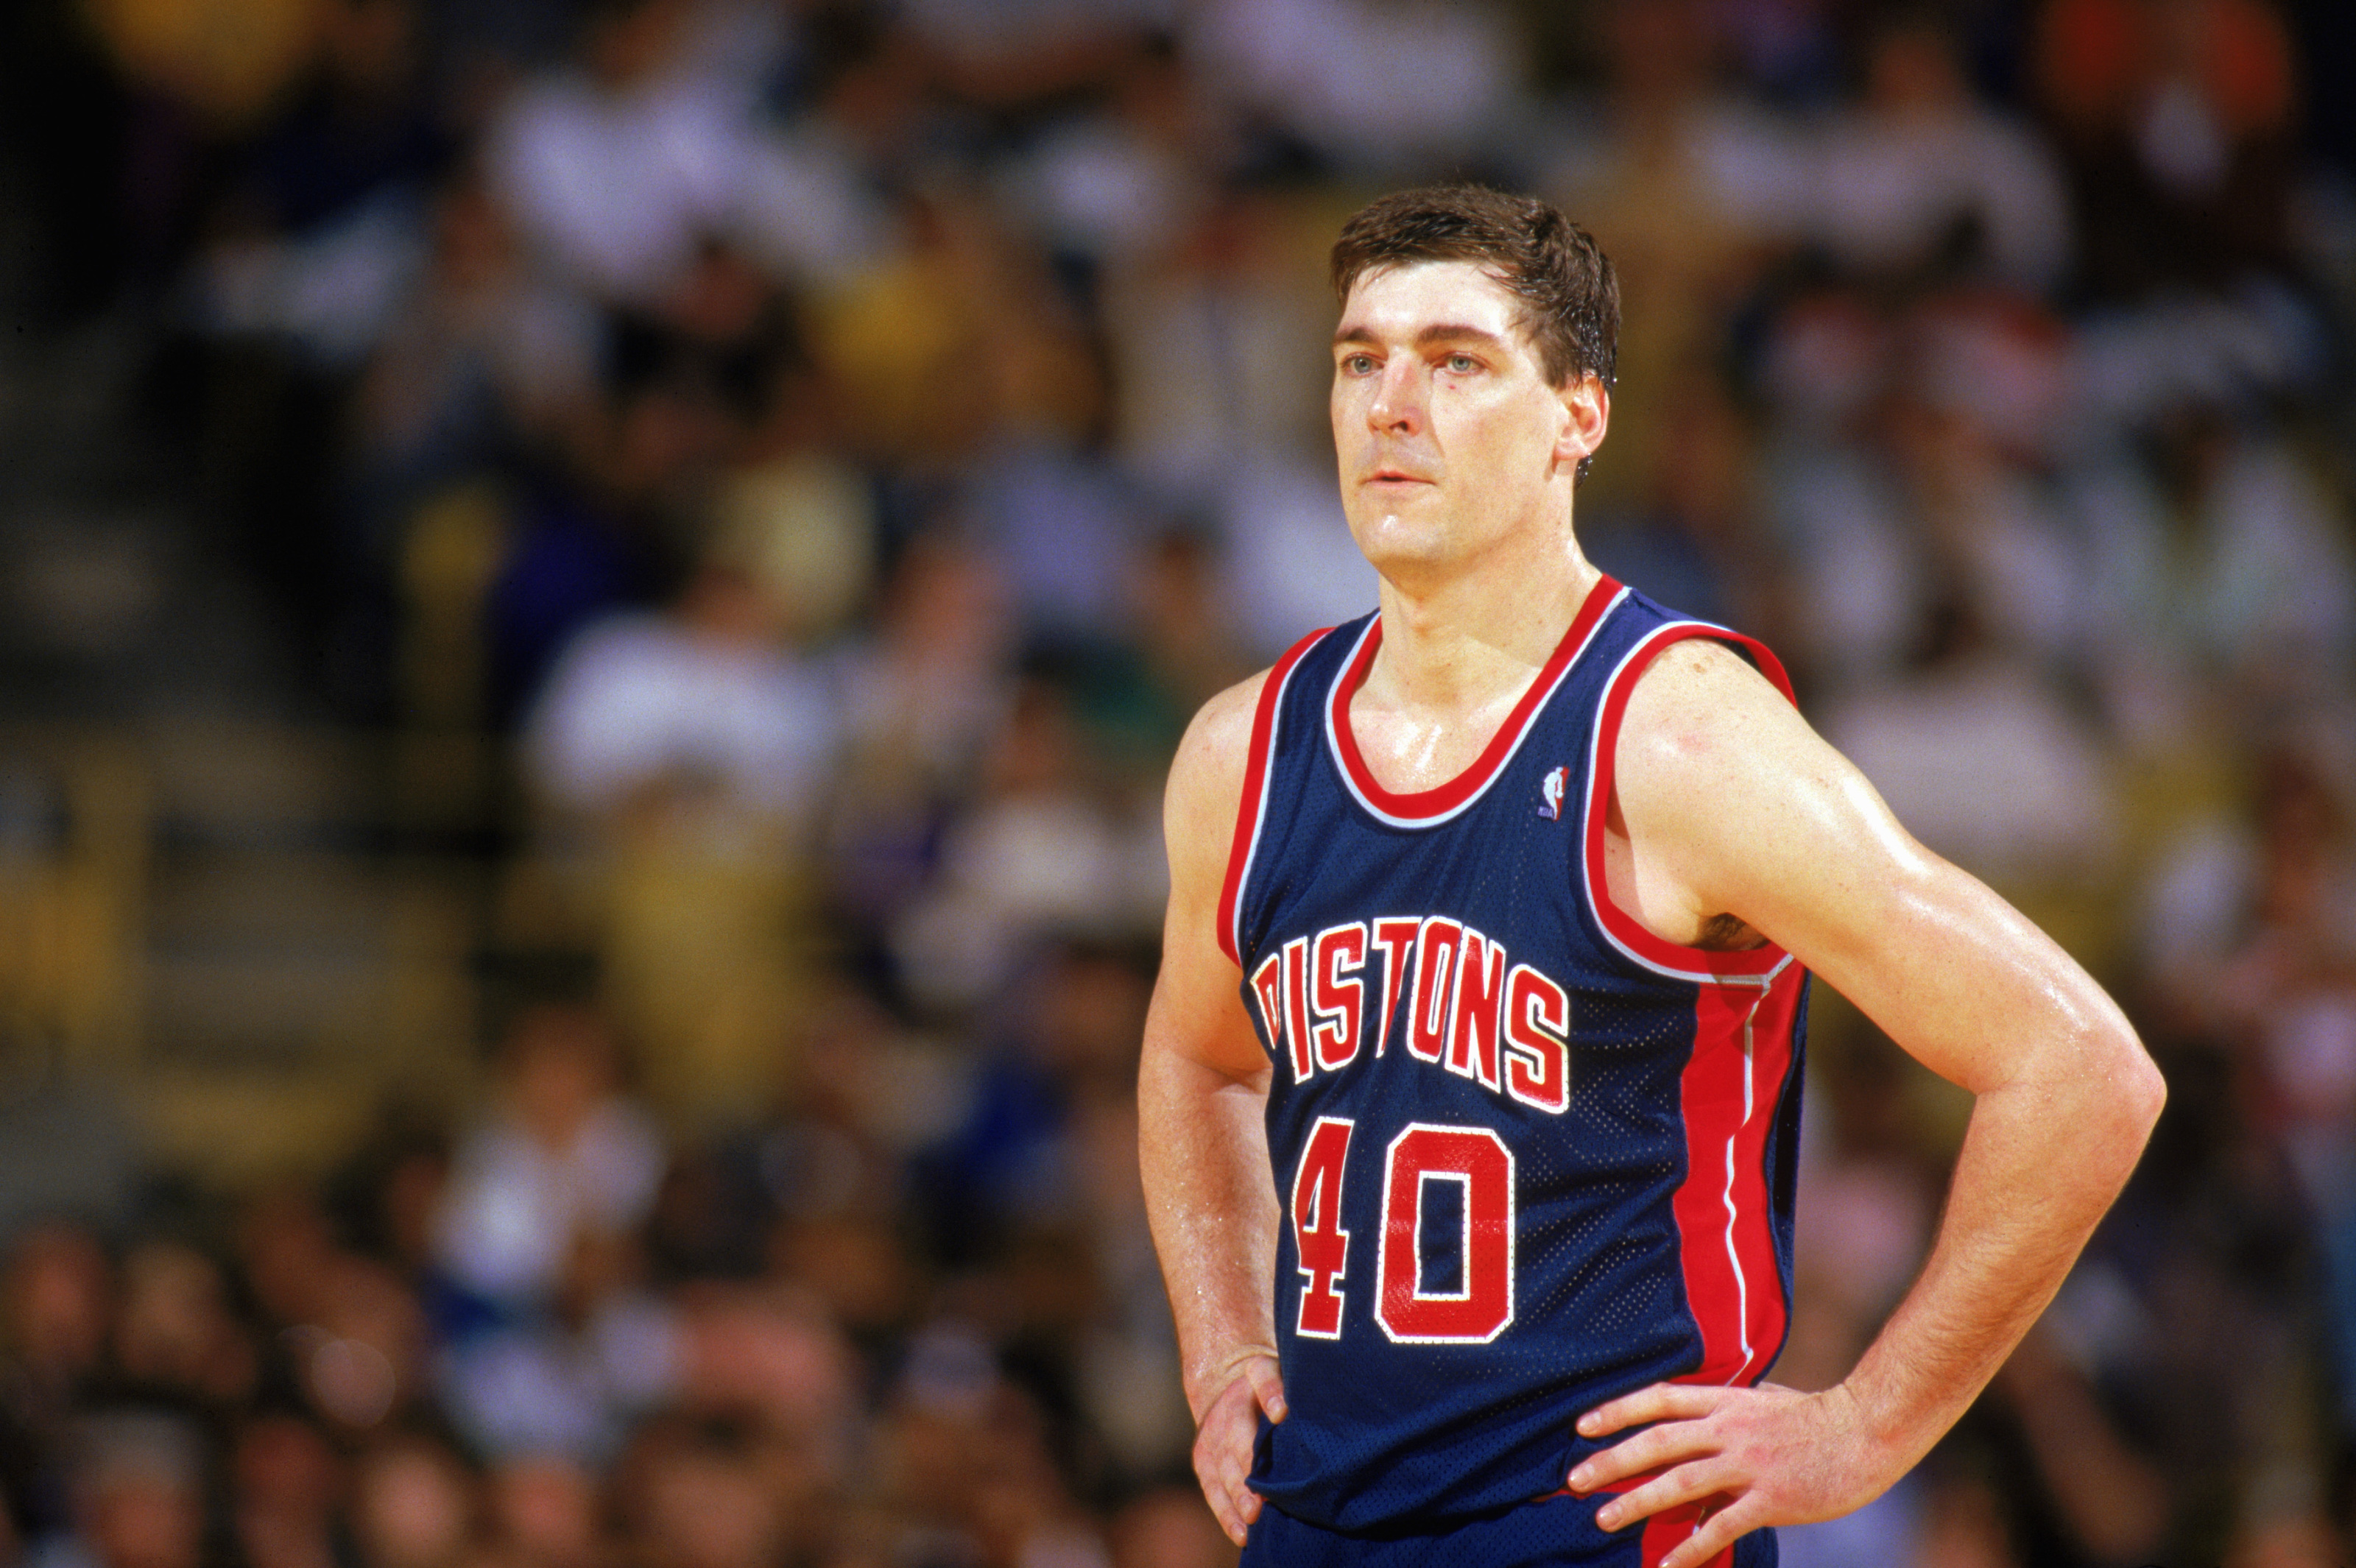 Bill Laimbeer of the Pistons: The Most Ruthless Player in NBA History